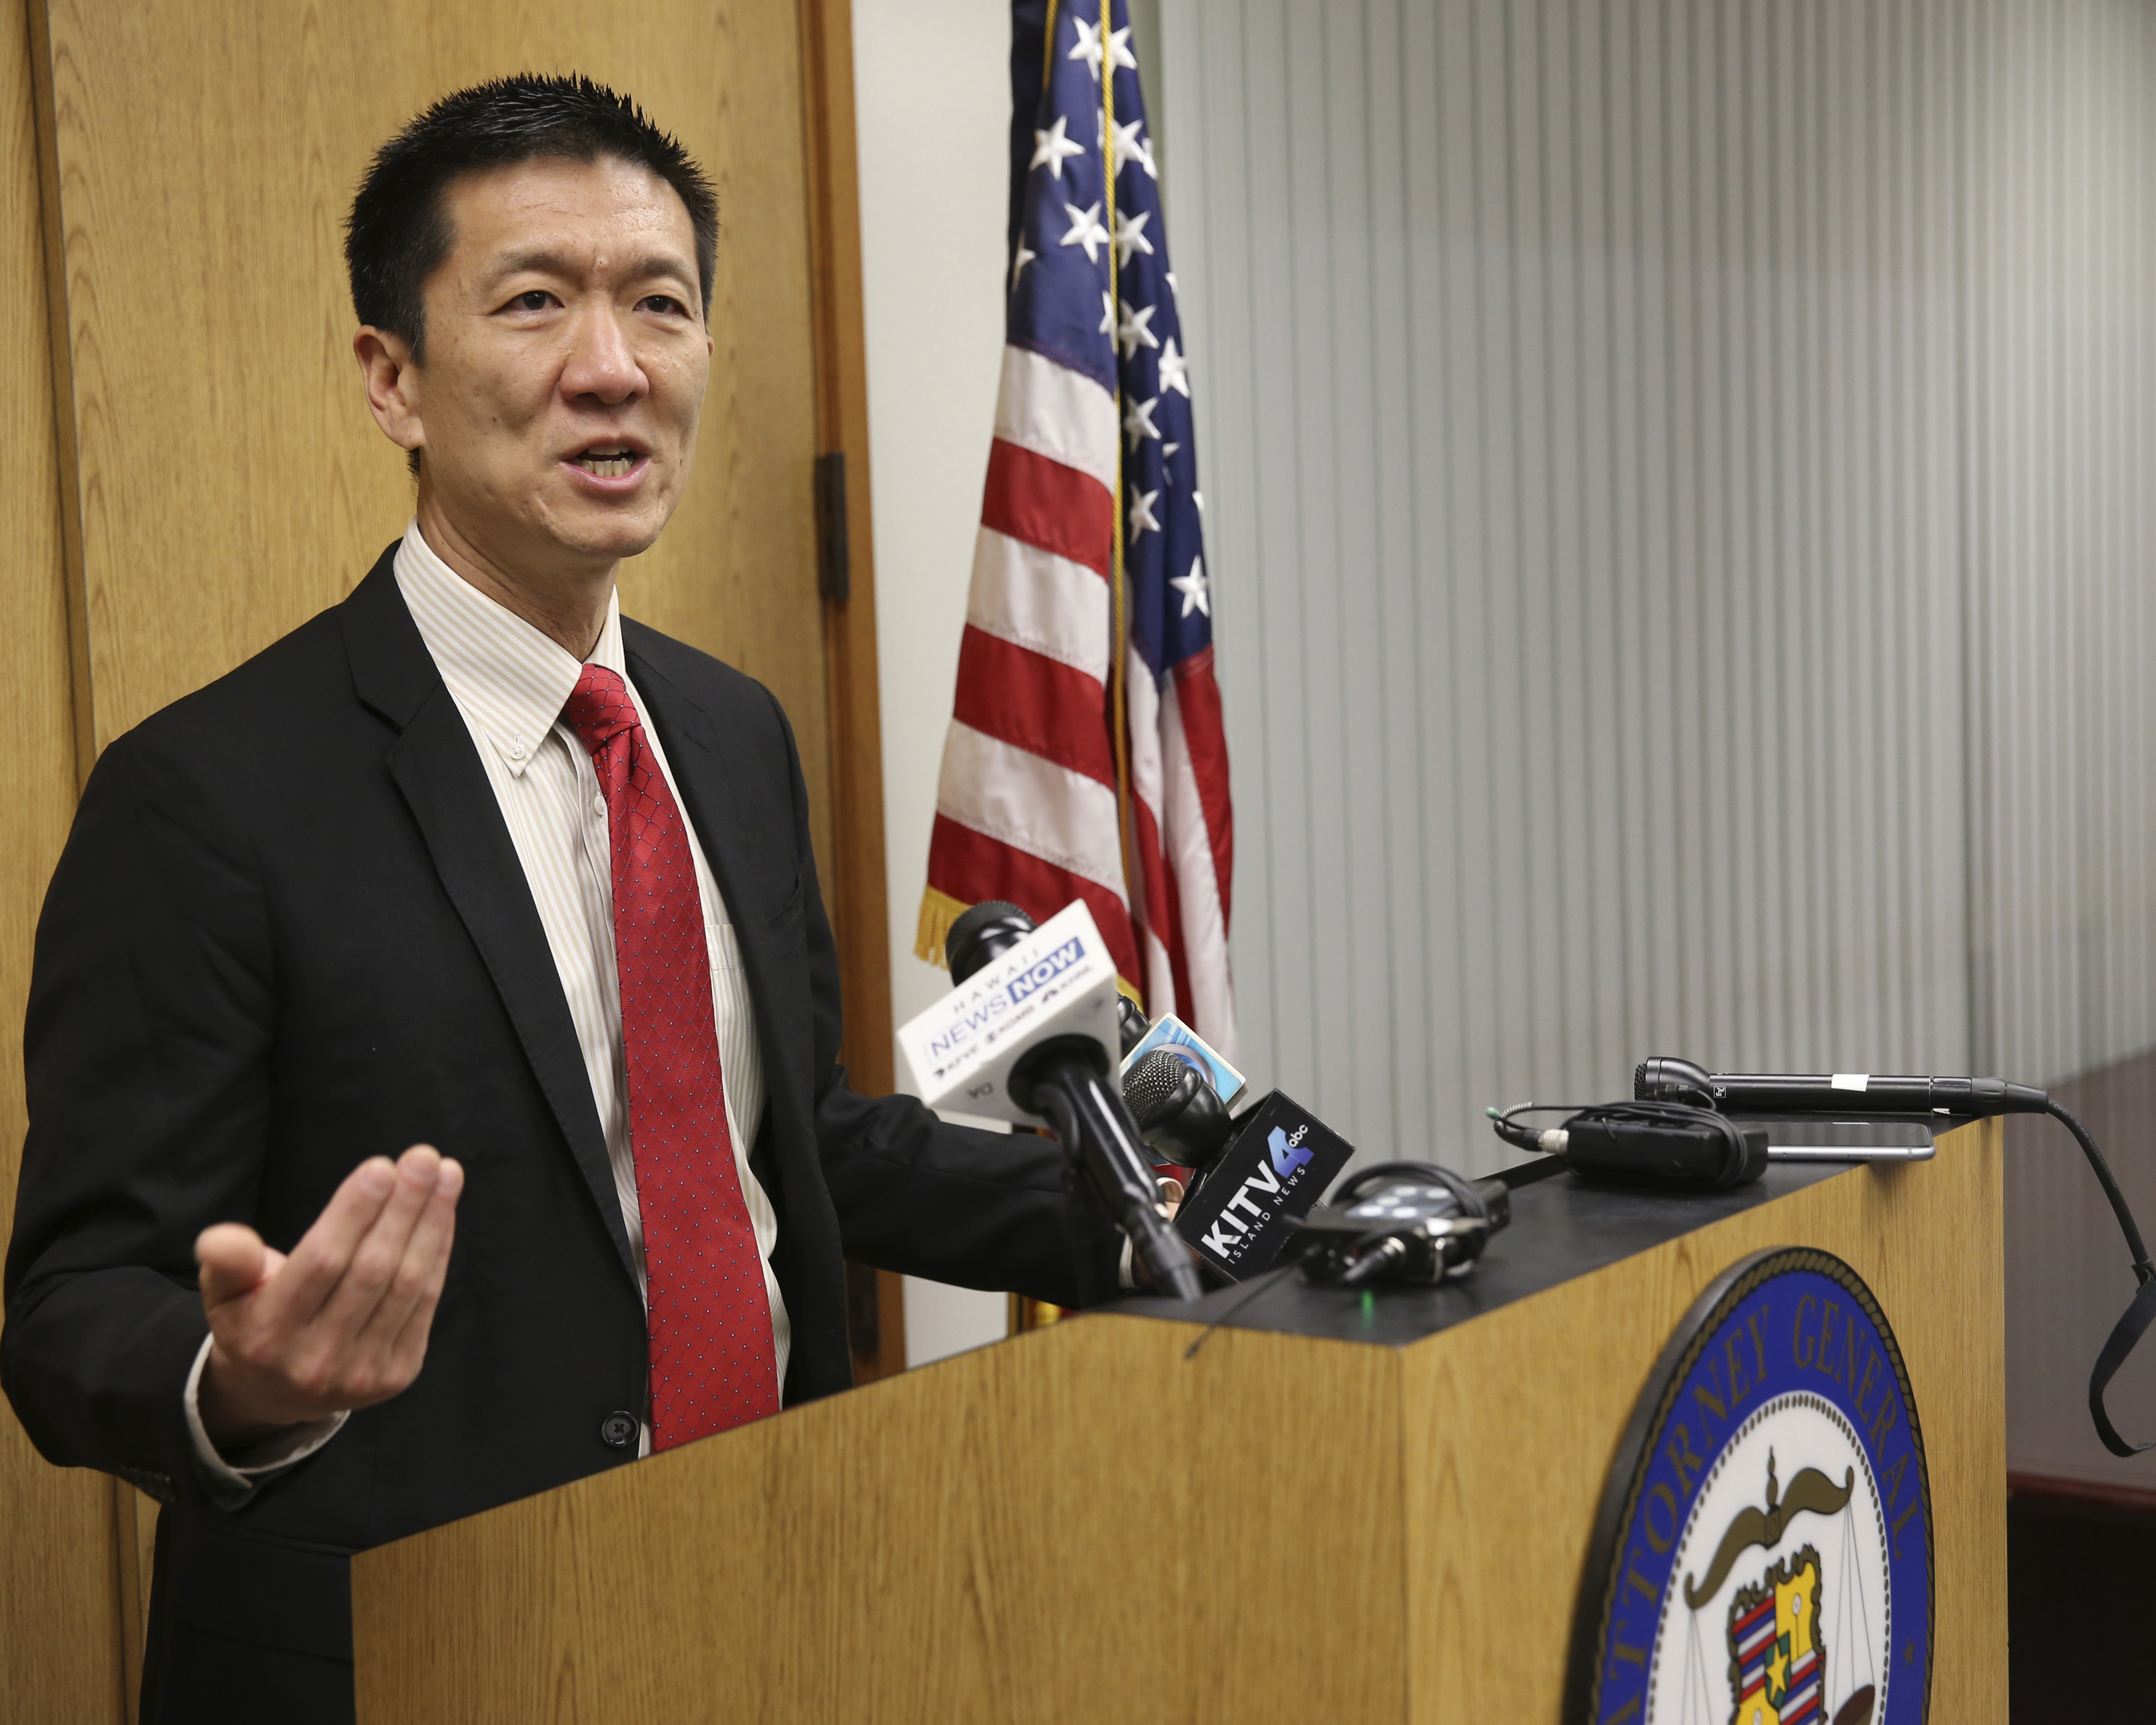 Hawaii Attorney General Douglas Chin speaks at a news conference in Honolulu, March 9, 2017. Chin's office filed an amended lawsuit against President Donald Trump's revised travel ban.